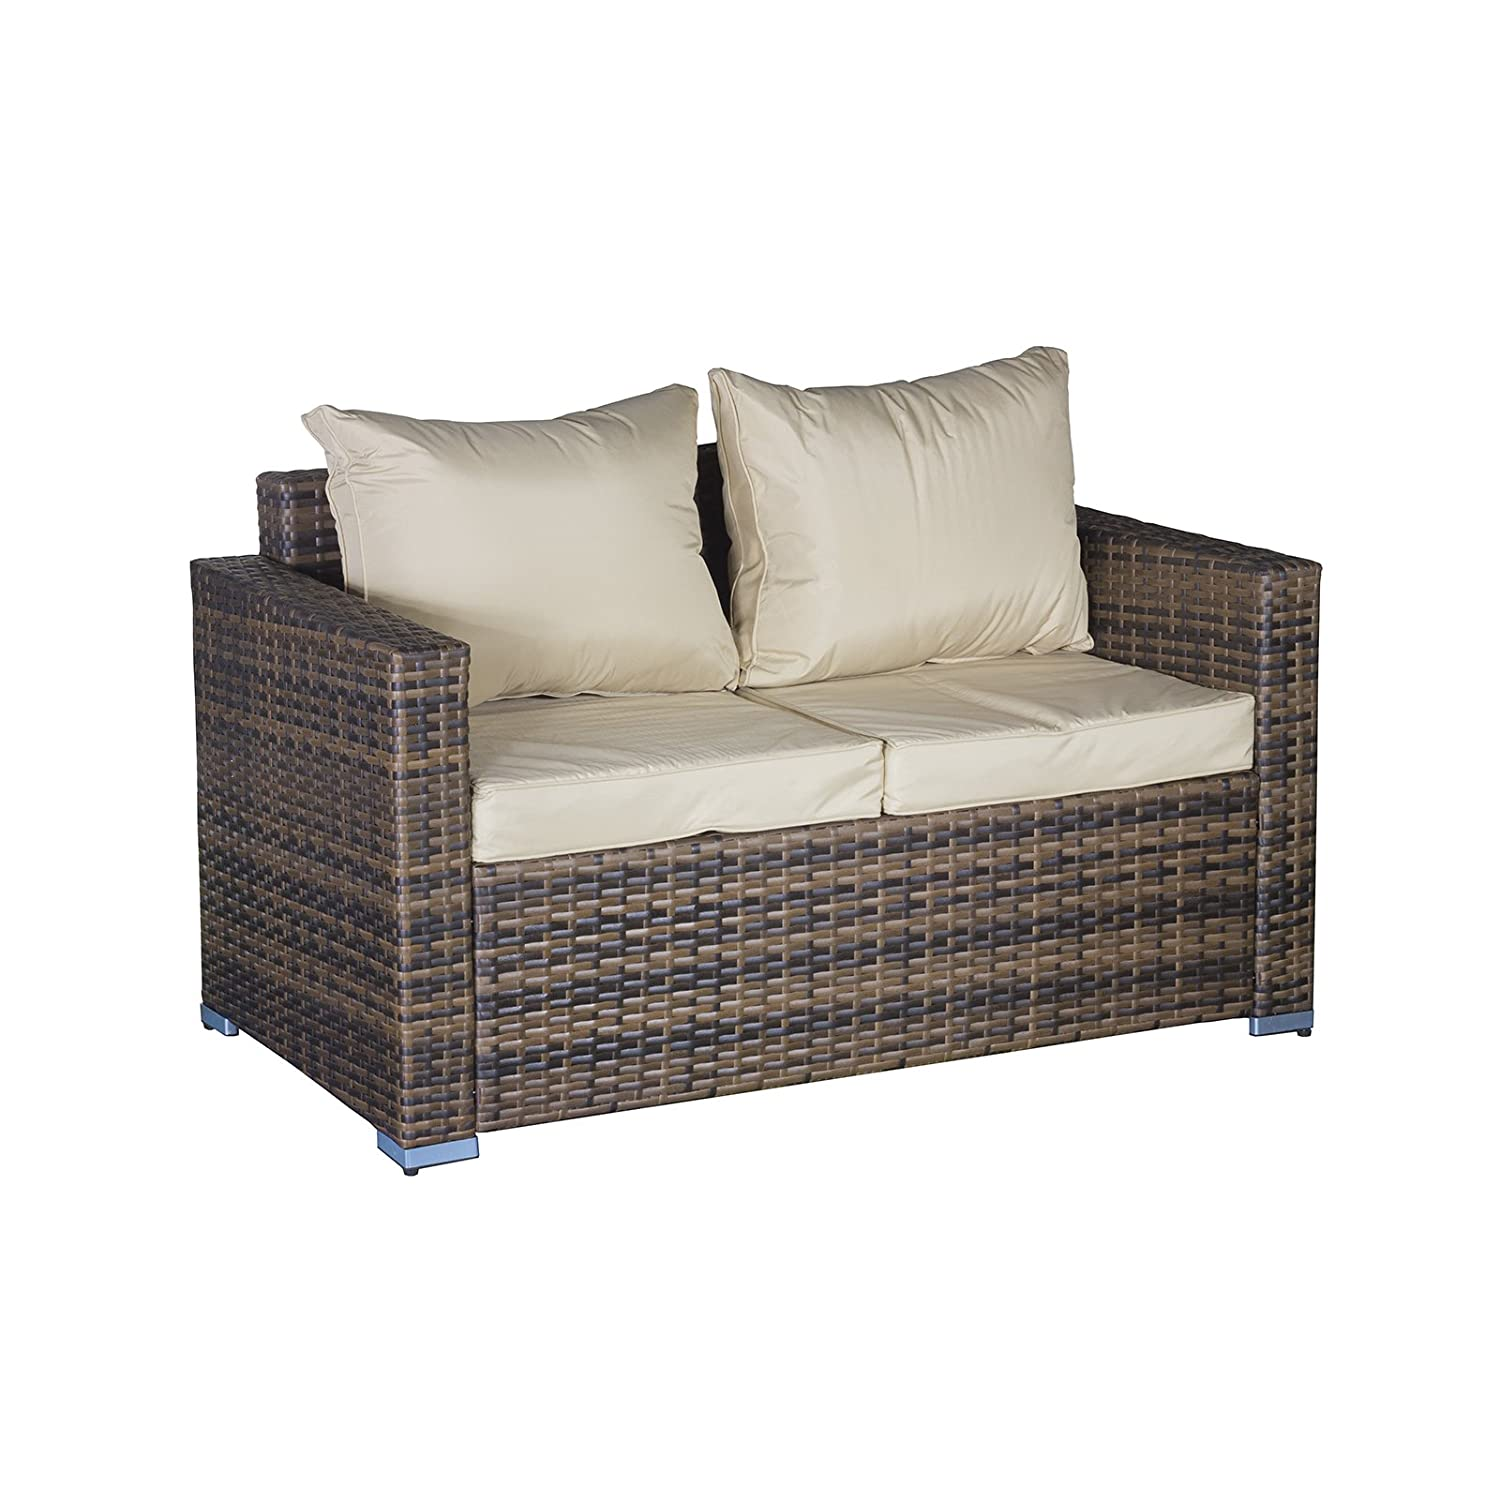 OseasonsR Oxford Modular 6 Seater Lounge Set With Coffee Table 2 Footstools Amazoncouk Garden Outdoors